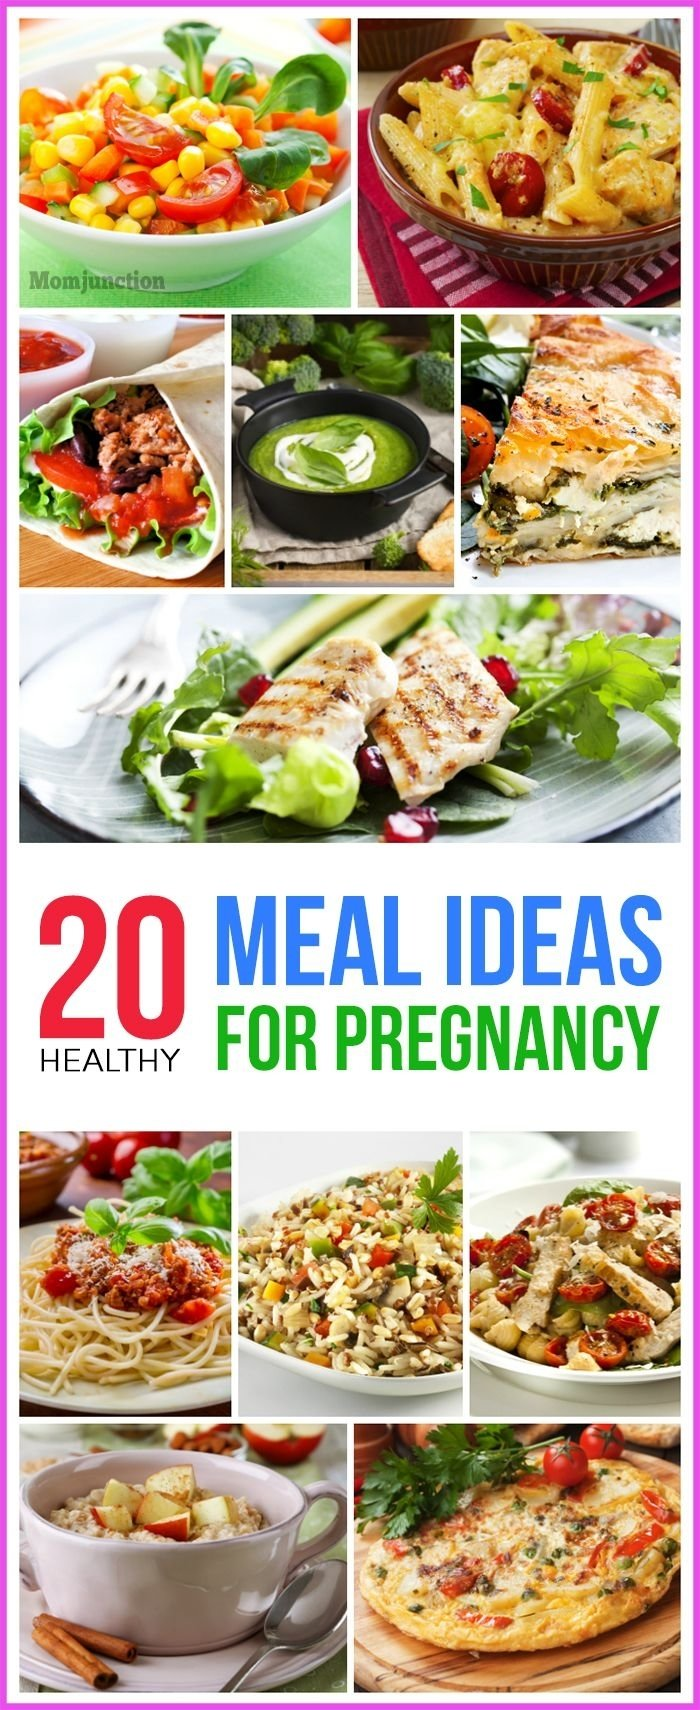 10 Nice Lunch Ideas For Pregnant Women 20 healthy meal ideas for pregnancy meals pregnancy and meal ideas 2020